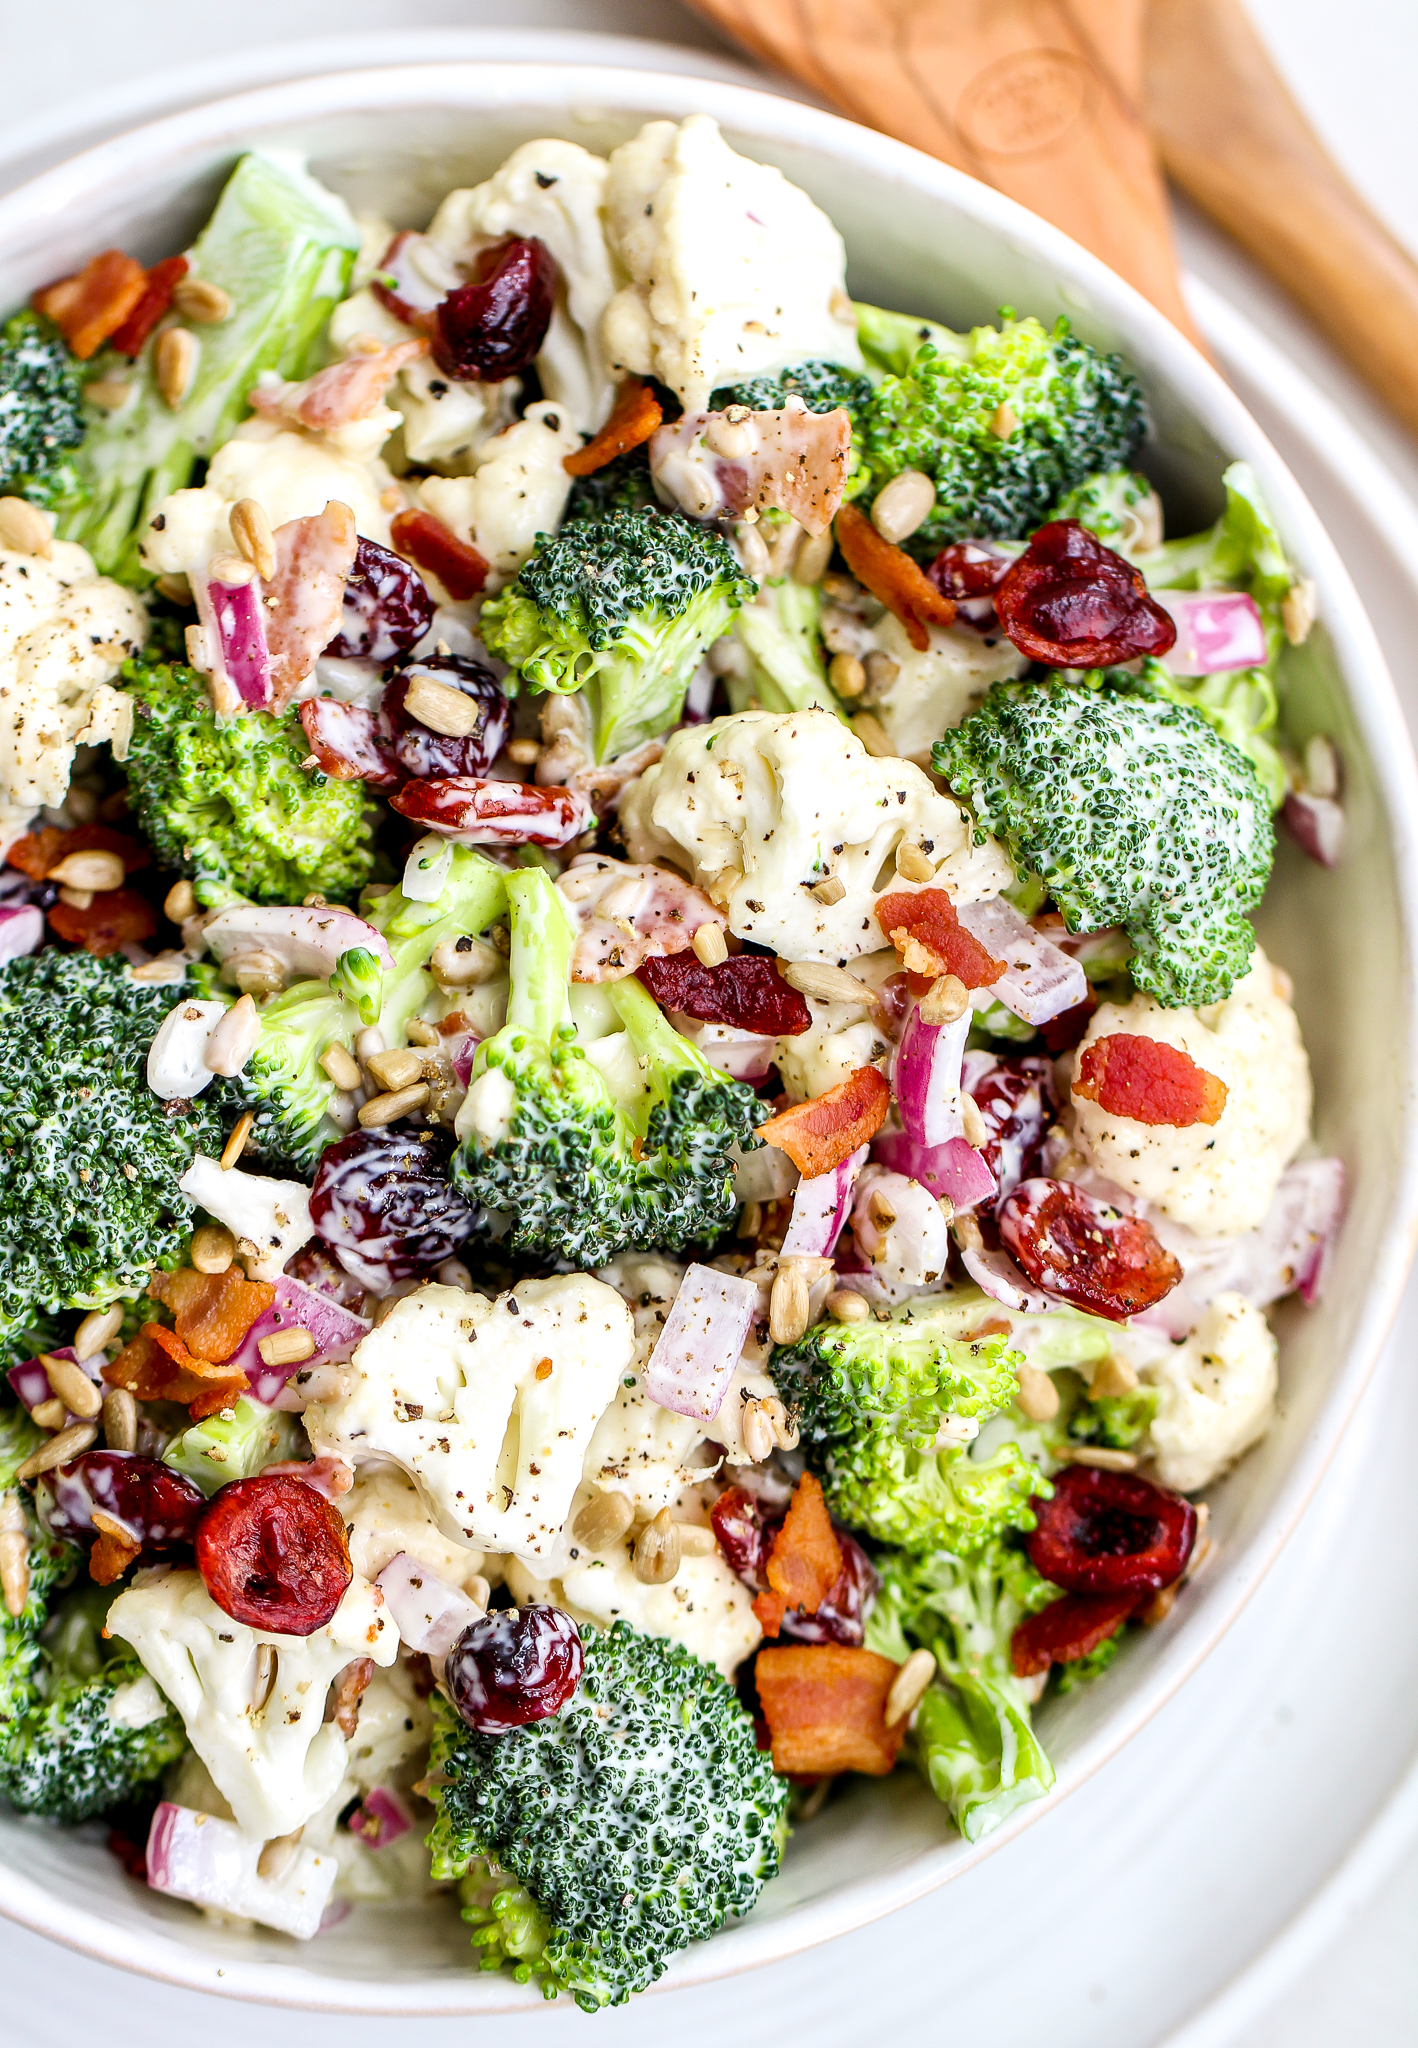 easy broccoli cauliflower salad in a white serving bowl with wooden salad spoons in the background. You can see the broccoli and cauliflower florets in a creamy dressing with sunflower seeds, chopped red onion, chopped bacon and dried cranberries. There is fresh cracked pepper on the top